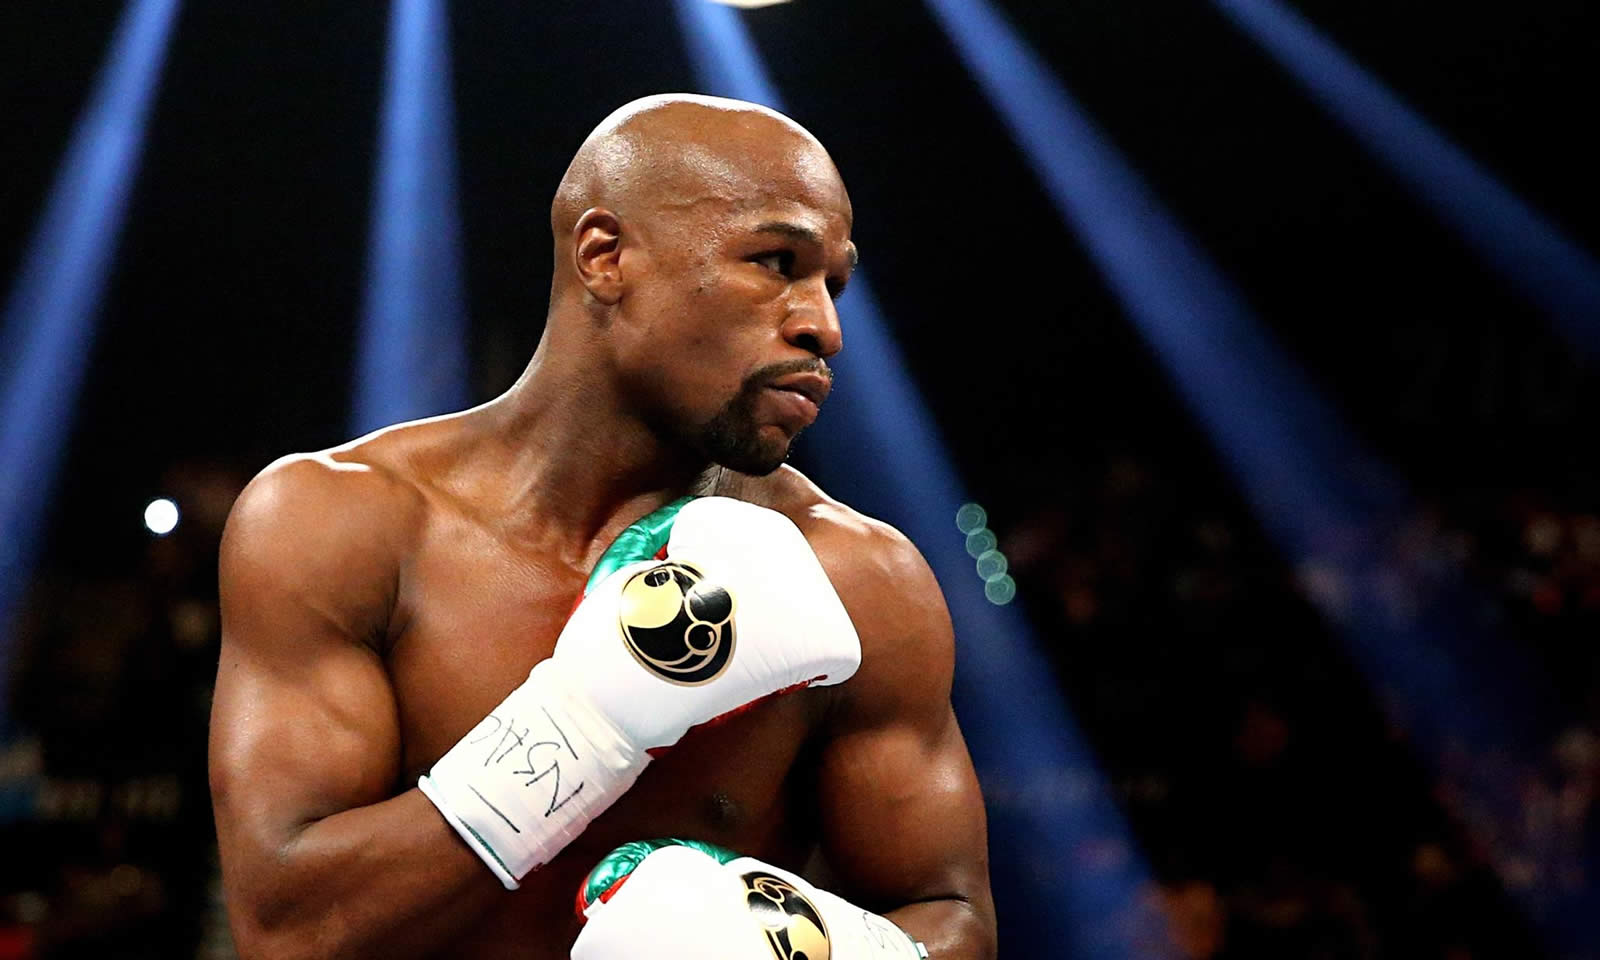 Floyd Mayweather | Booking & Contact